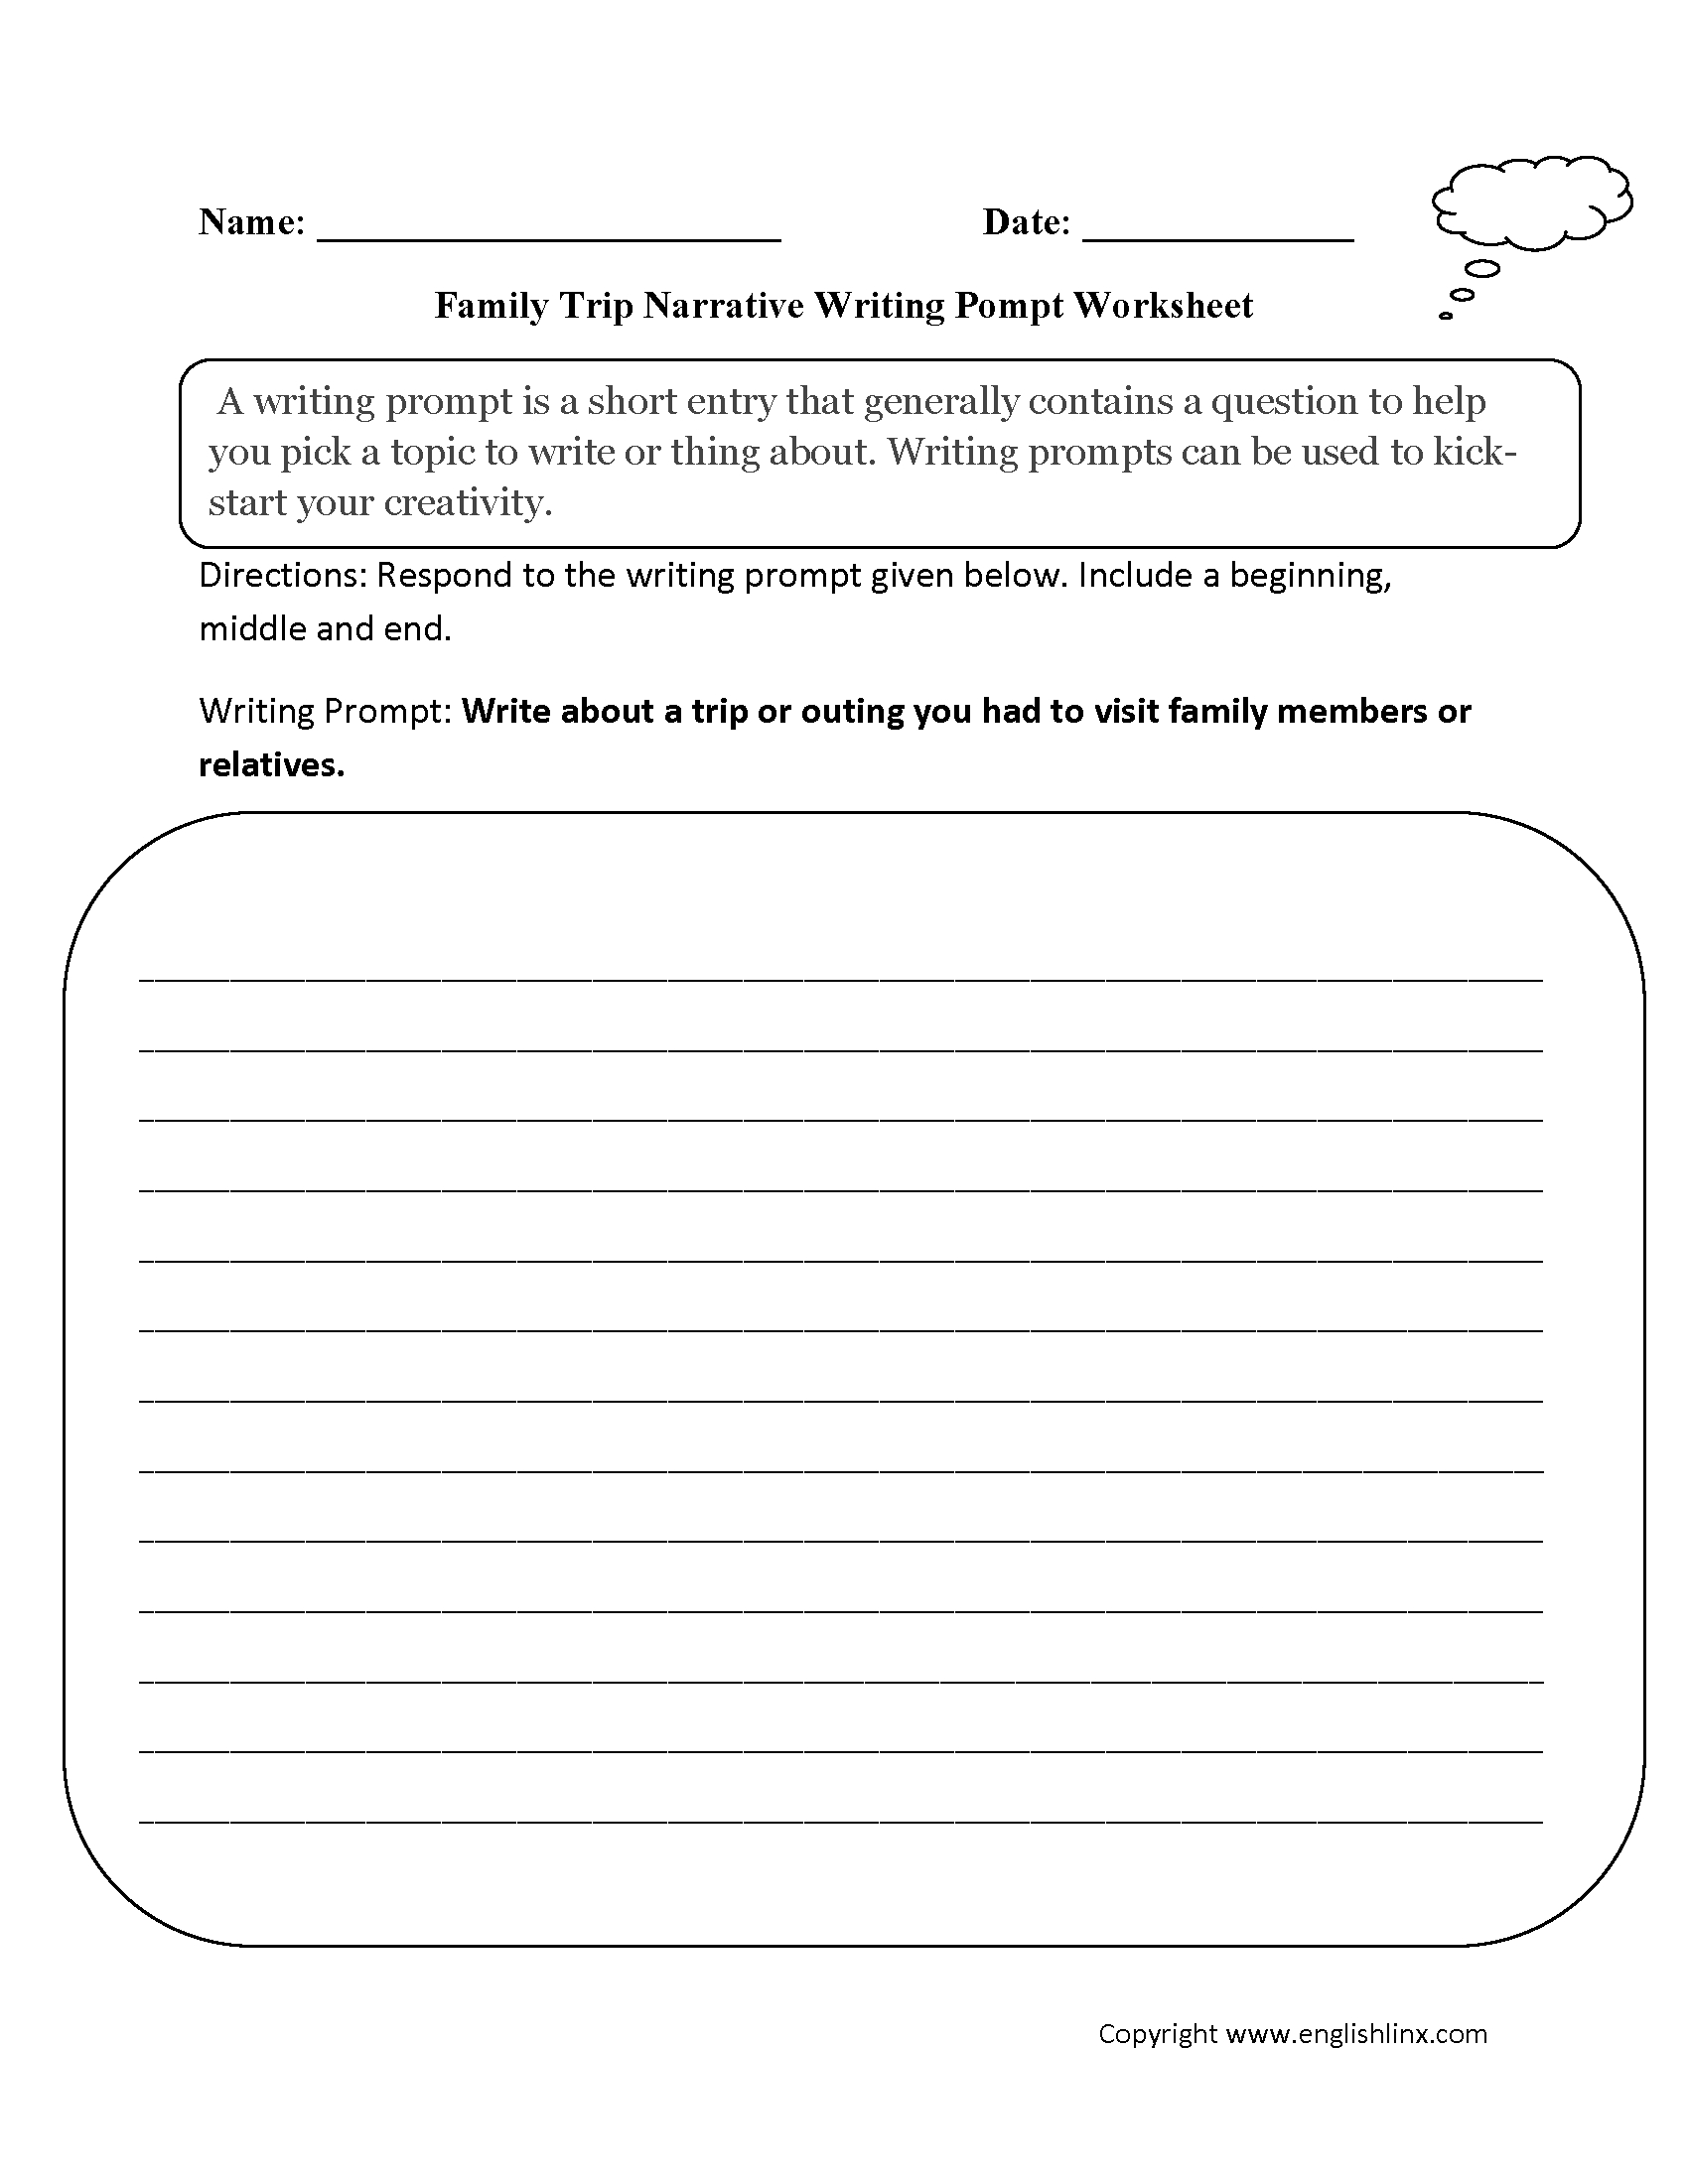 Writing Prompts Worksheets | Narrative Writing Prompts Worksheets - 6Th Grade Writing Worksheets Printable Free